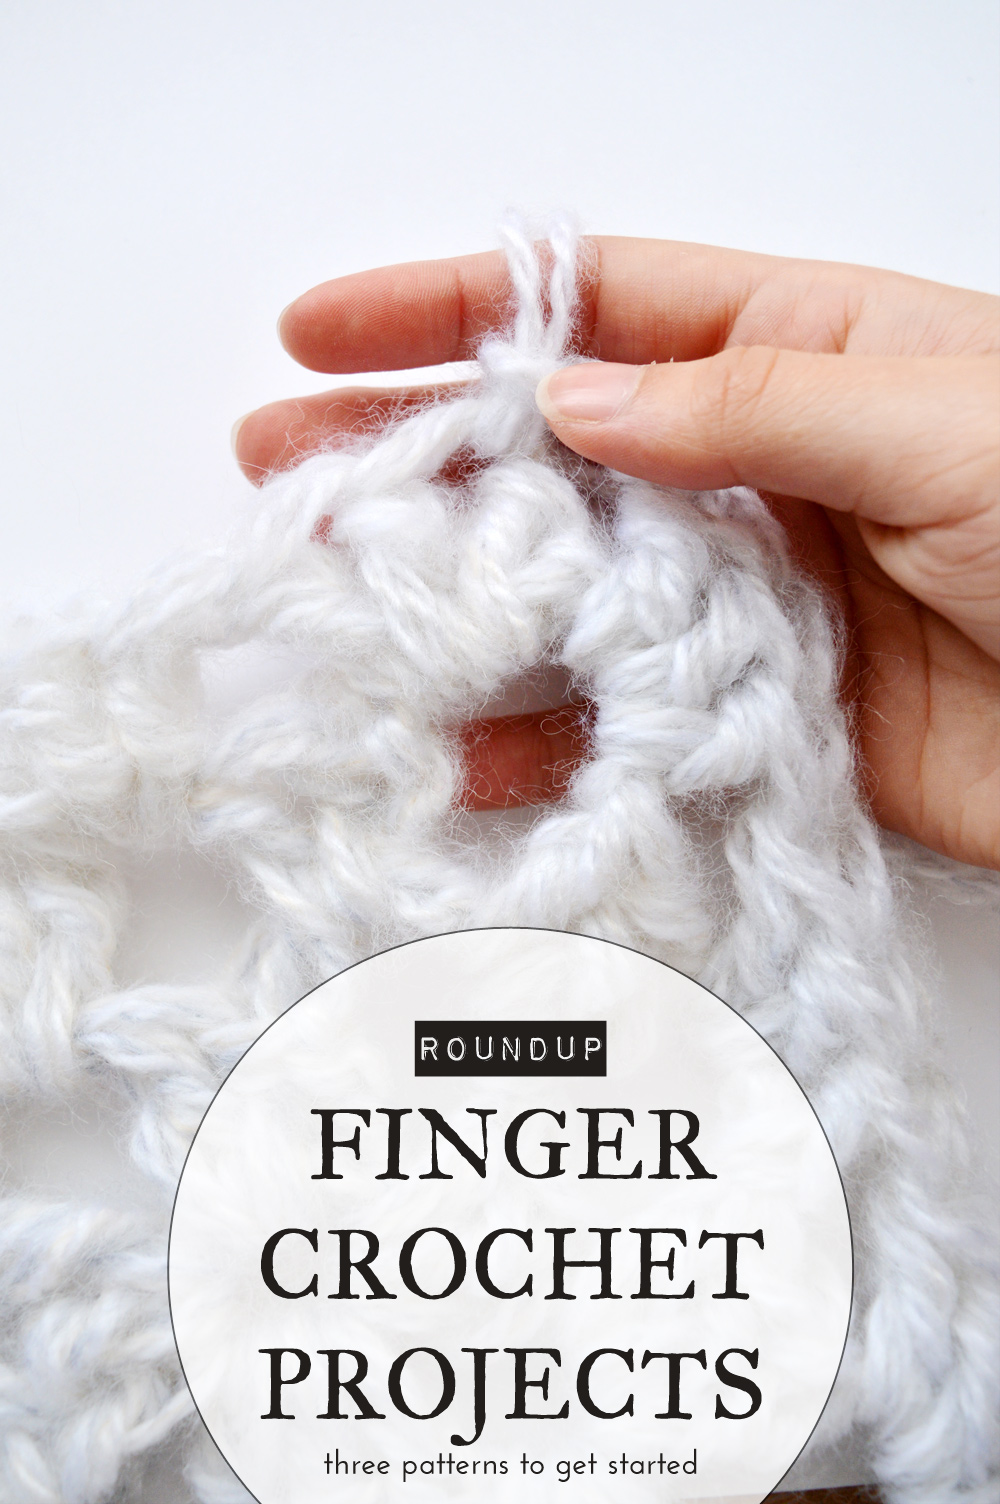 Crocheting Your Fingers : finger-crochet-projects-roundup-Crafting-Fingers.jpg